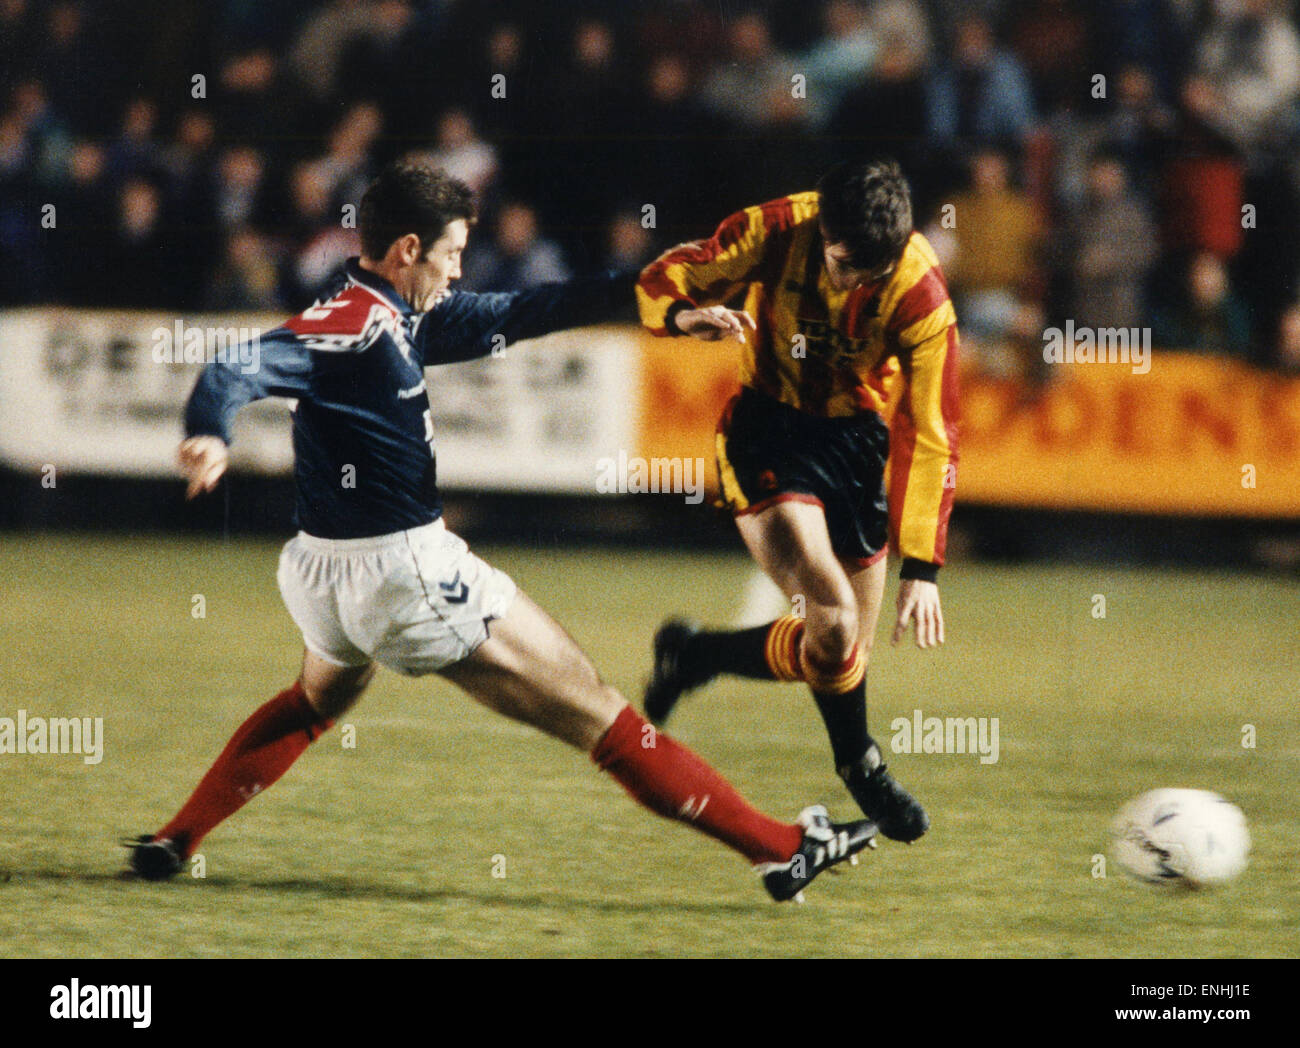 Falkirk footballer David Weir moving in to cut out the threat of Gerry Britton during the match against Partick - Stock Image